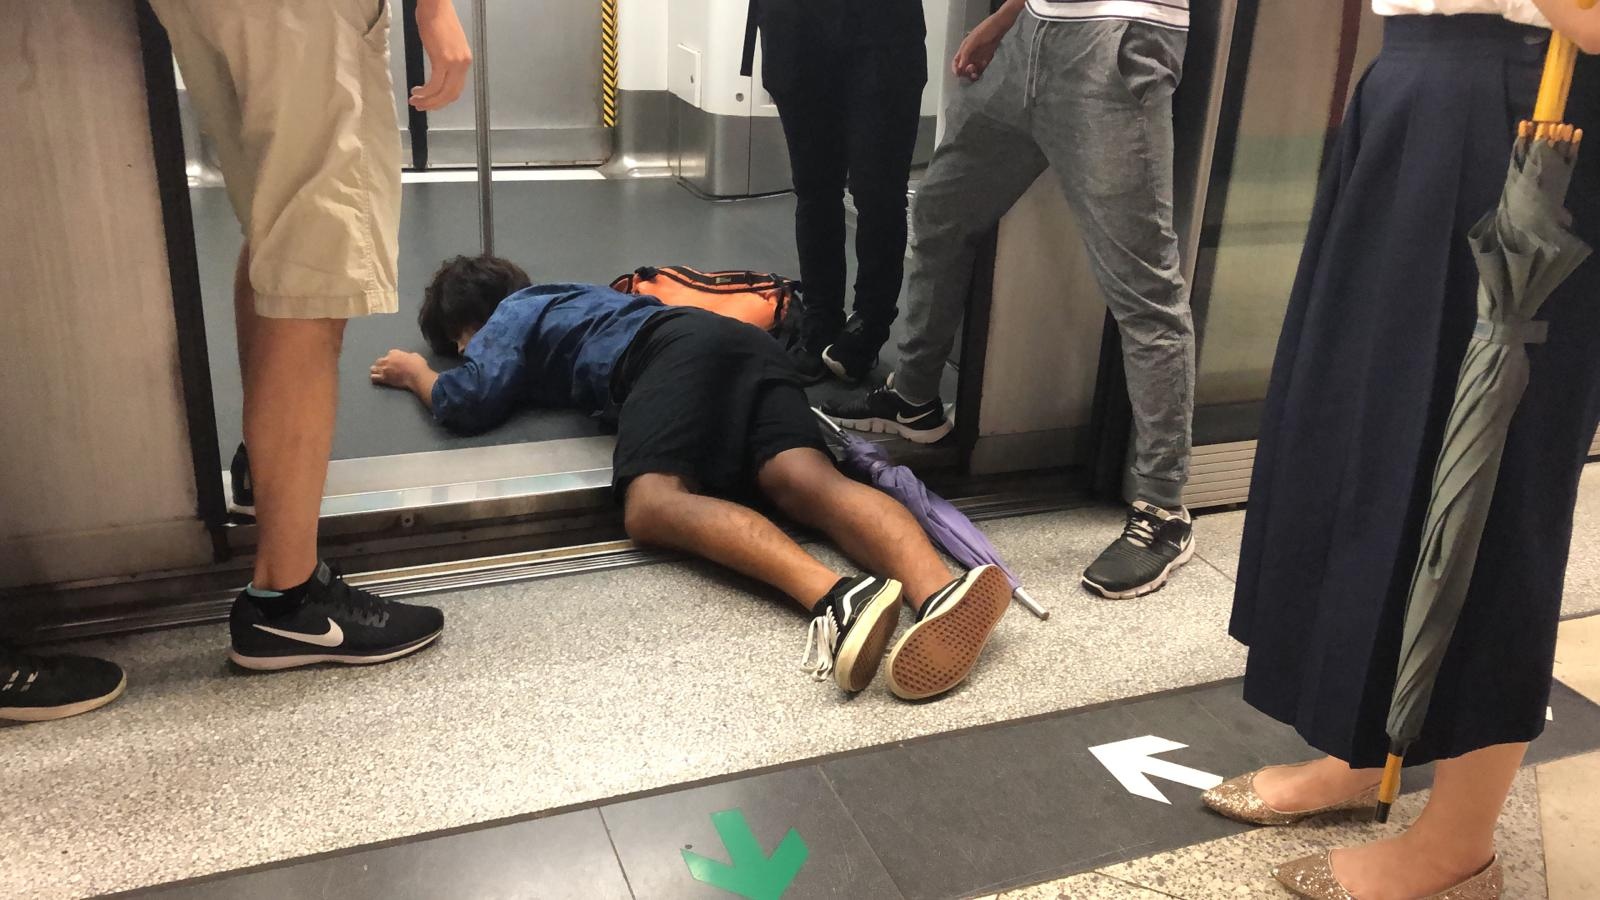 A protester lies on the floor, preventing the train from leaving in Hong Kong.